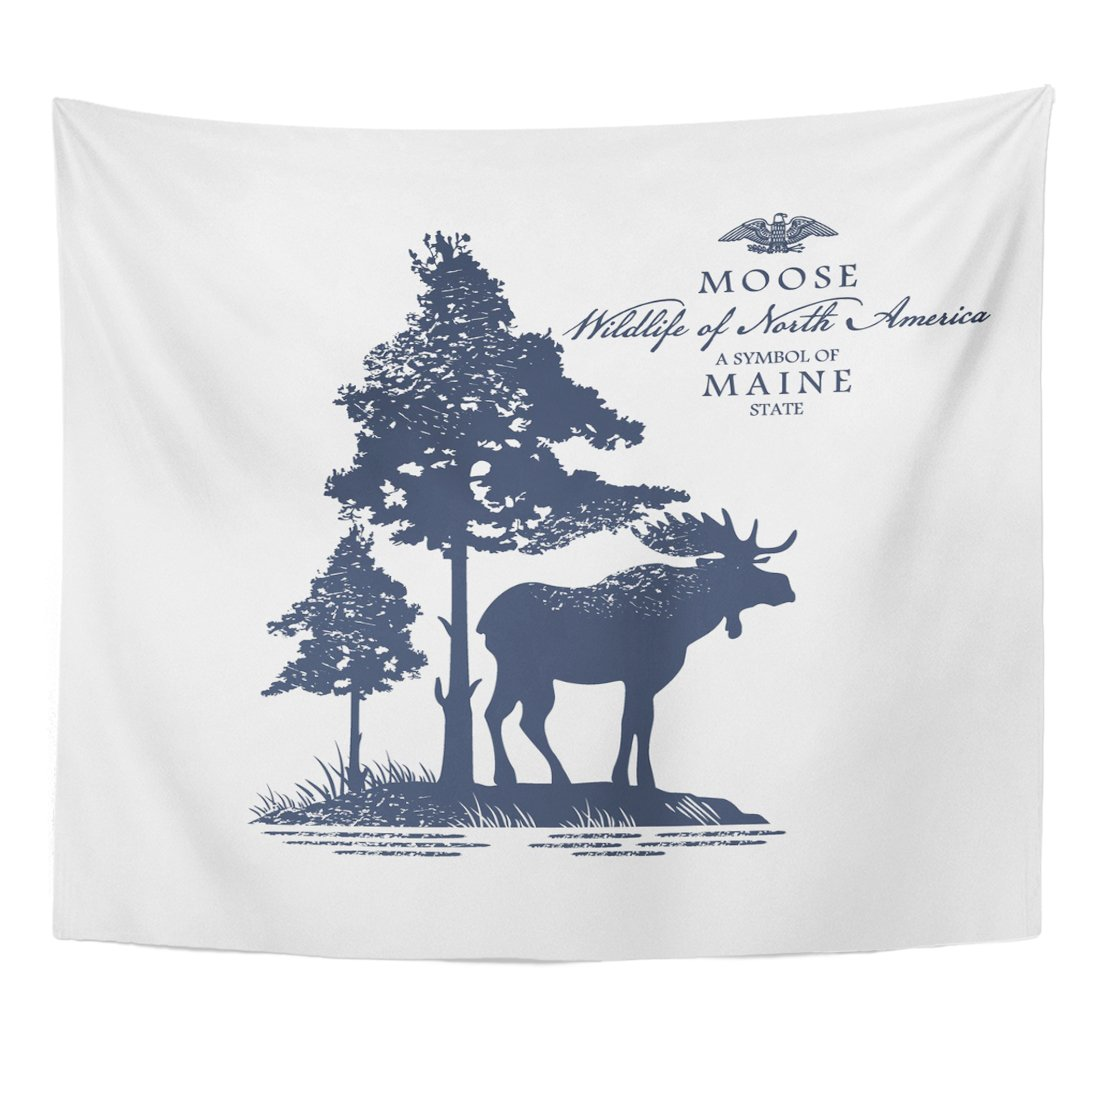 Emvency Tapestry Maine Moose Wildlife of America Blue Color Animal Fauna Home Decor Wall Hanging for Living Room Bedroom Dorm 50x60 Inches